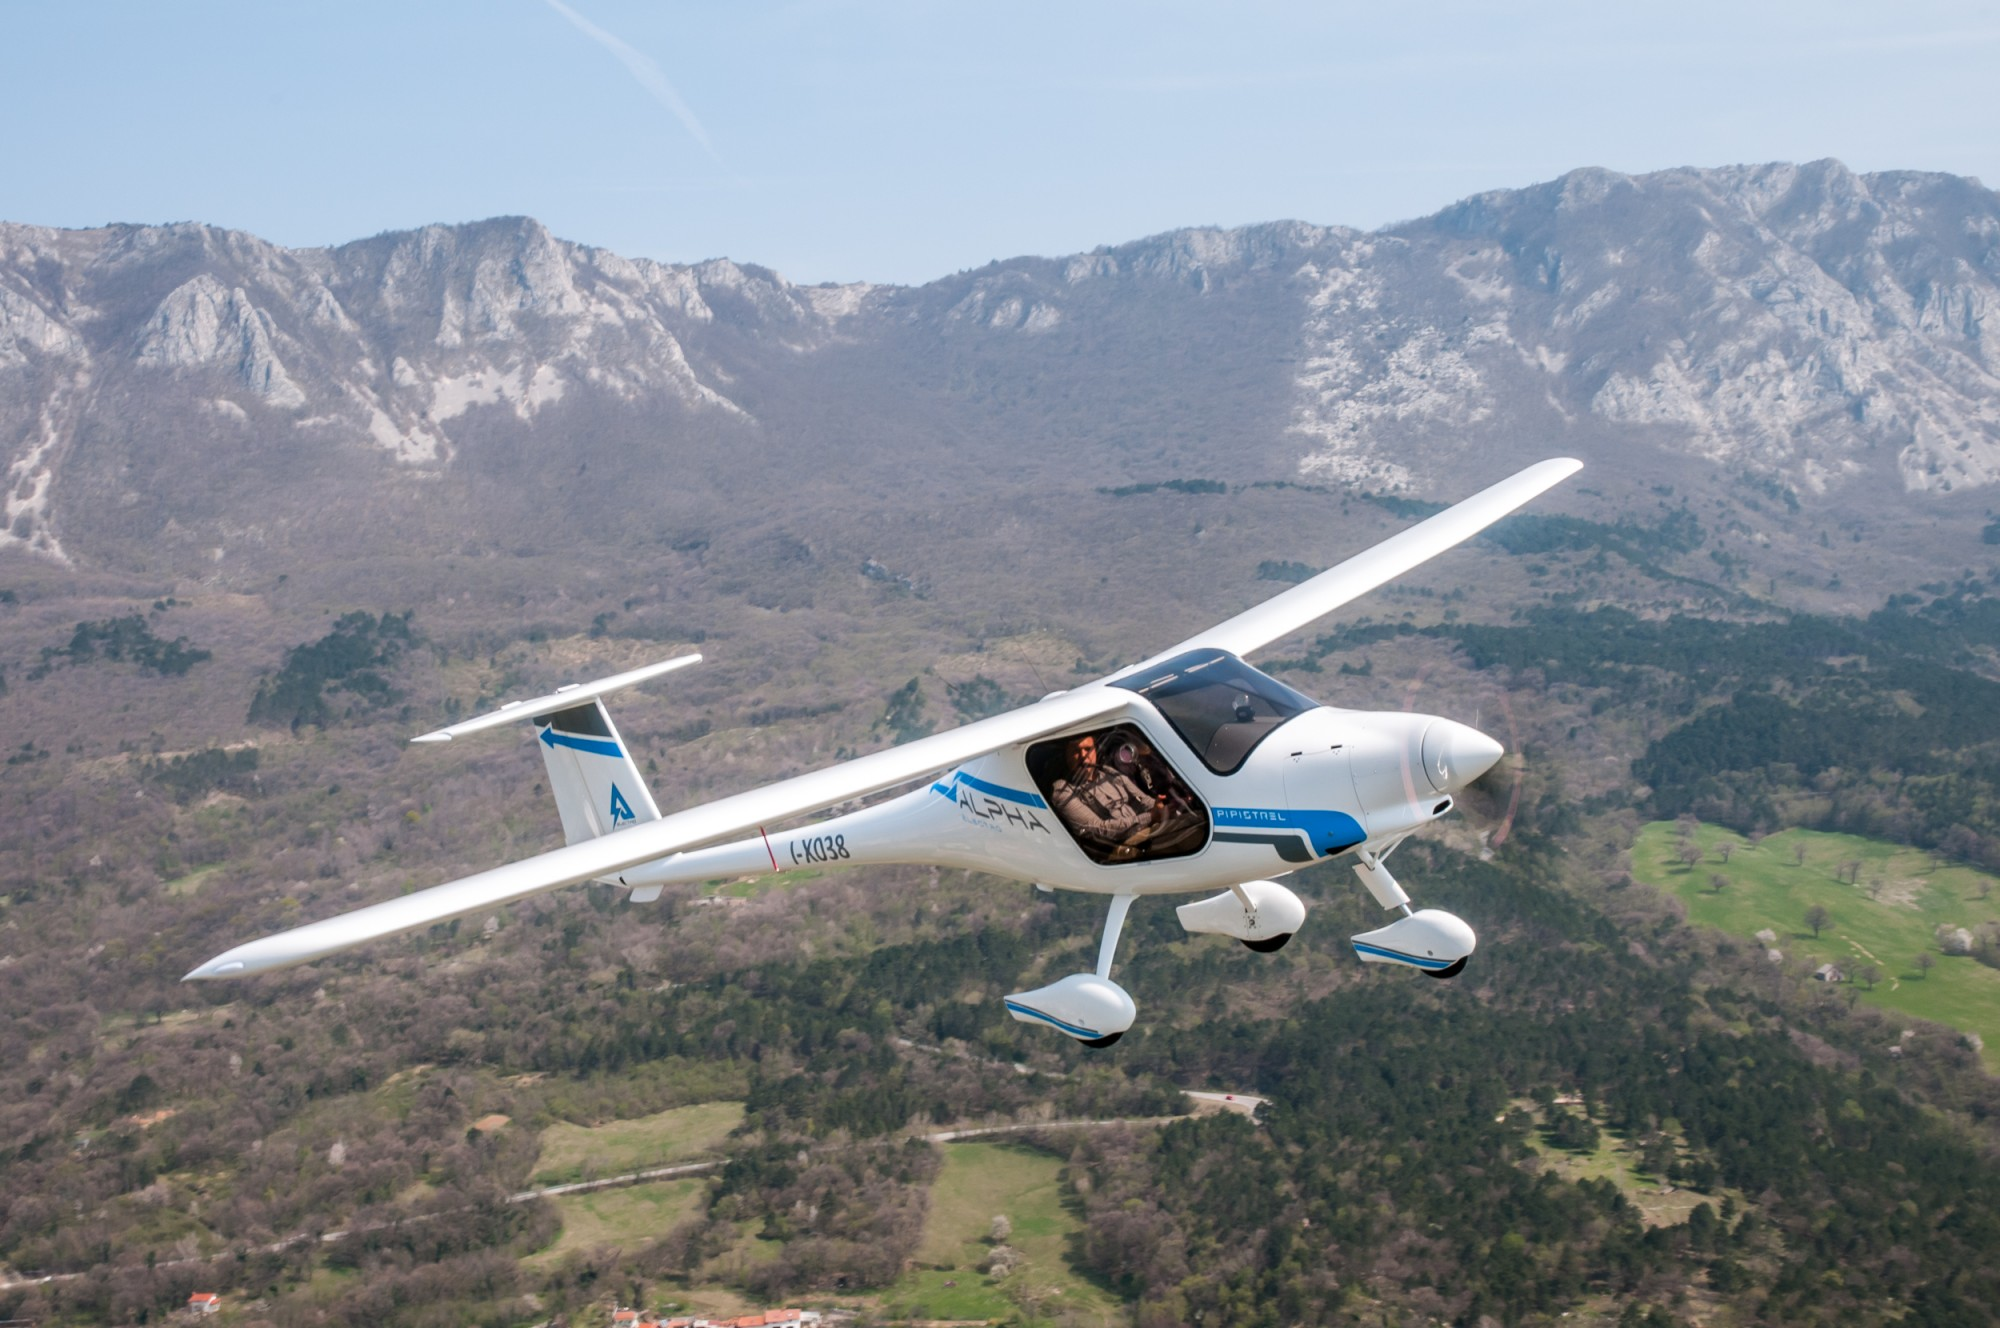 Pipistrel-Alpha-Electro-aircraft-zero-emissions-electric-aircraft-LSA-approved-for-training-operations-and-flight-schools-21